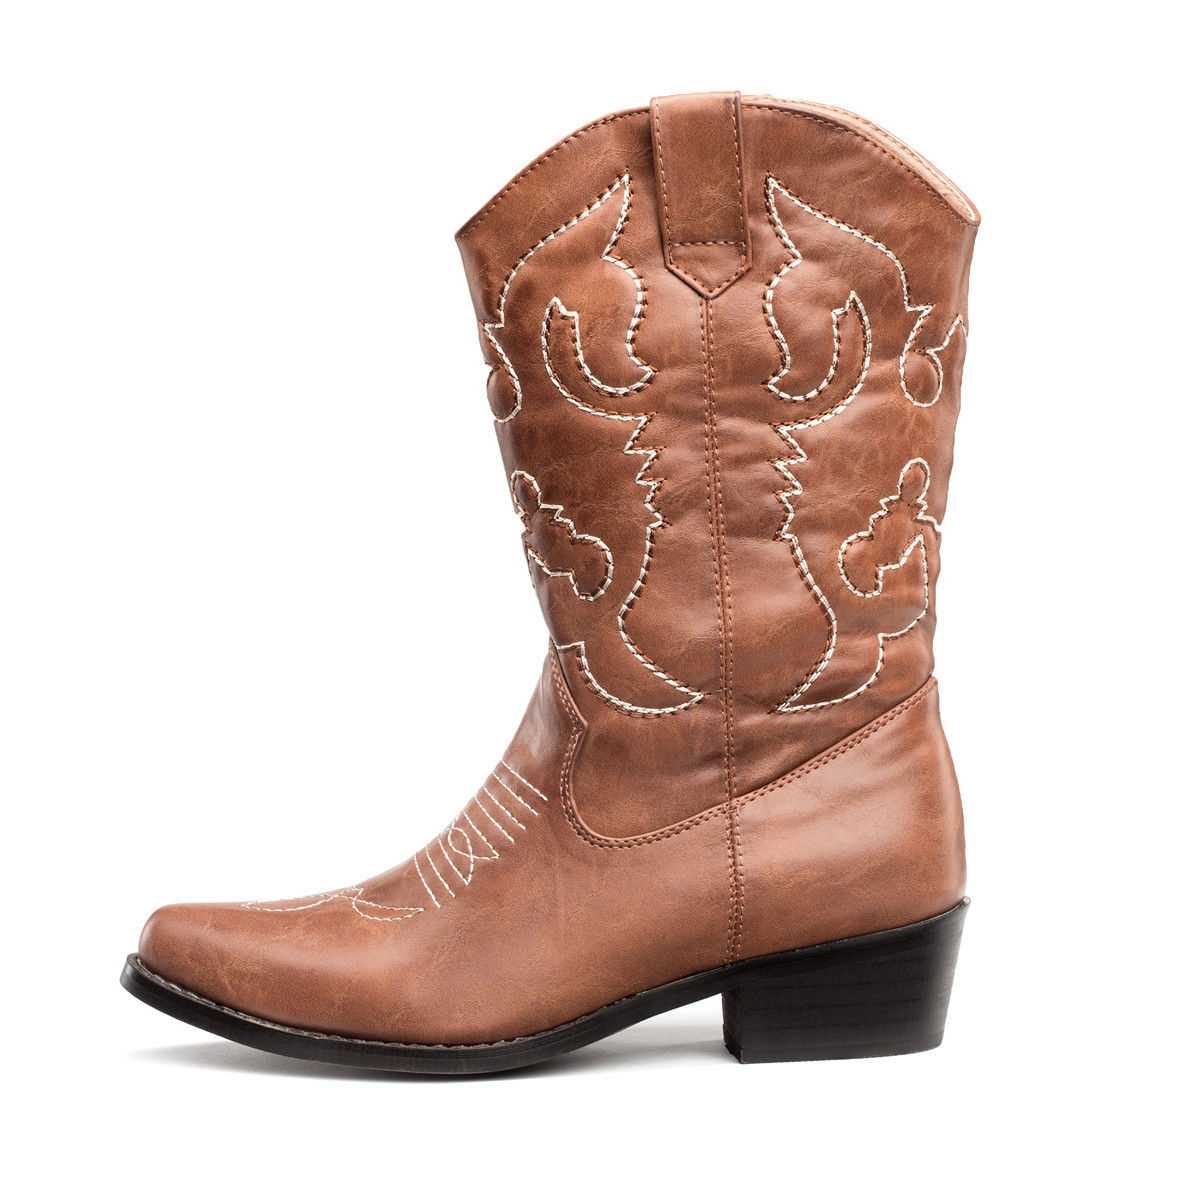 FREE-SHIP-SheSole-Womens-Cowboy-Cowgirl-Boots-Western-Wedding-Dress-Shoes